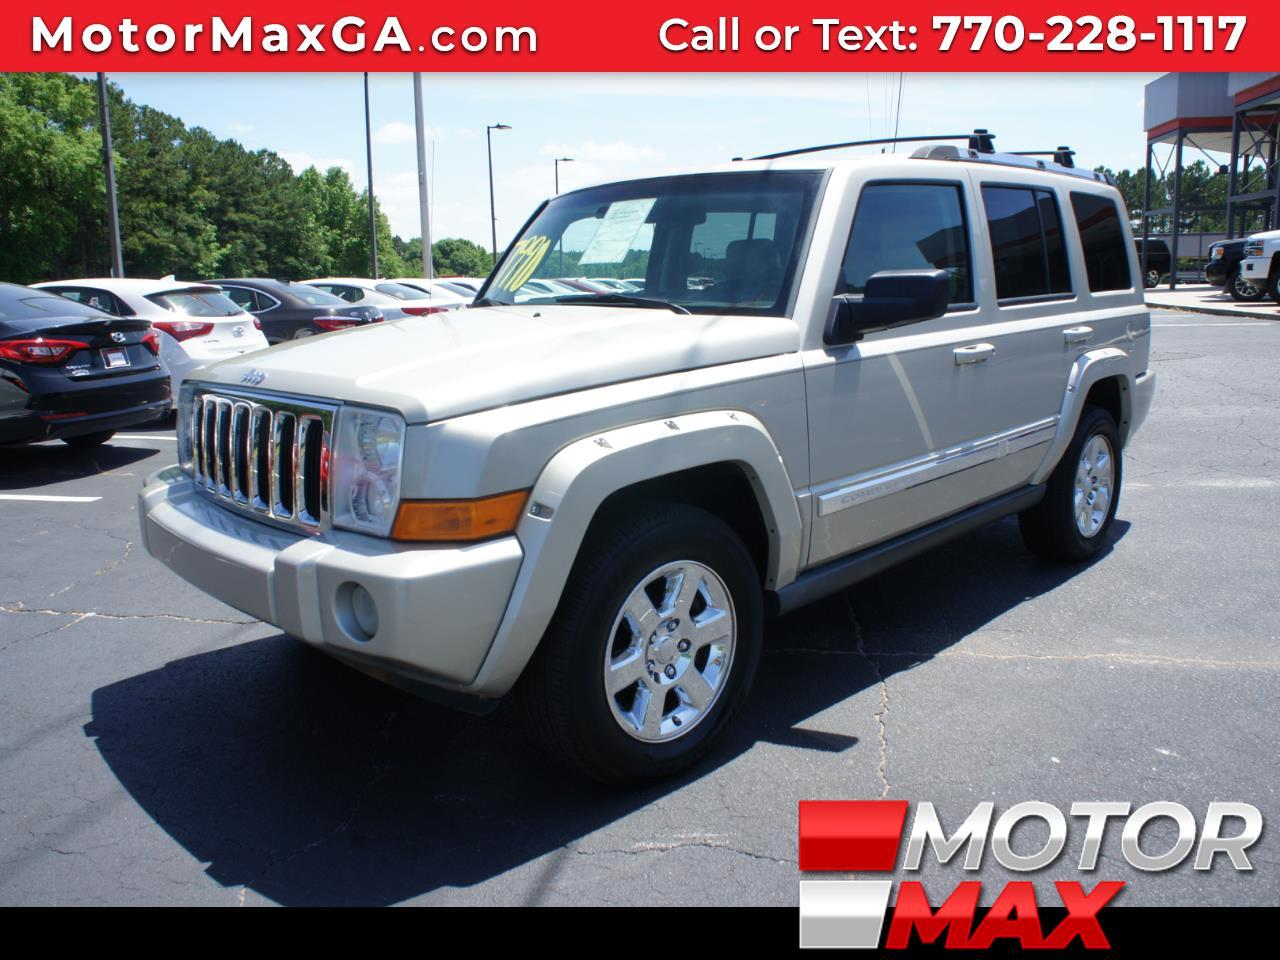 2007 Jeep Commander 2WD 4DR LIMITED HEMI